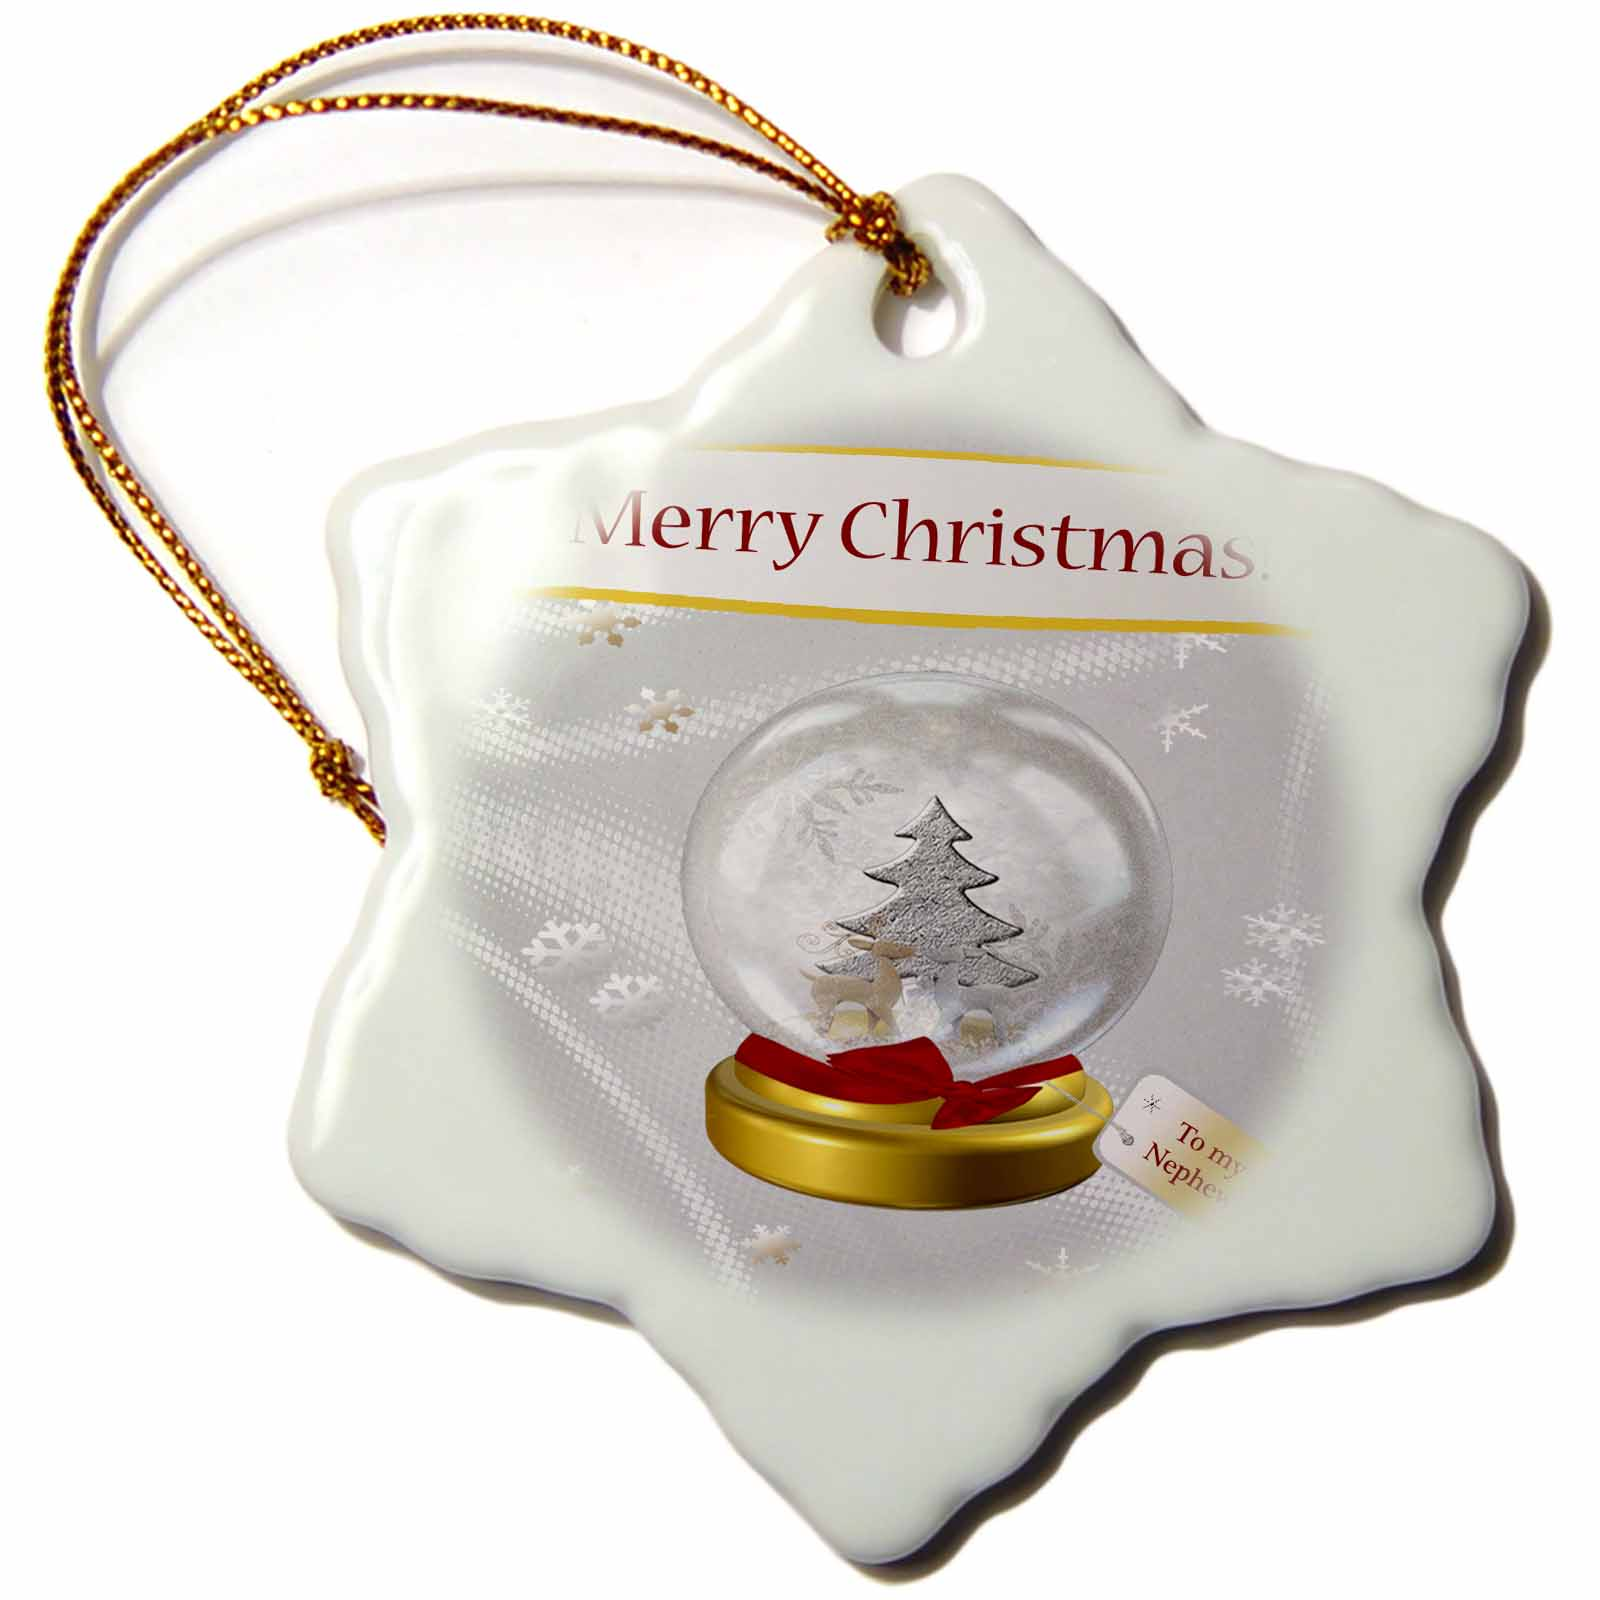 3dRose Snow Globe with Deer, Tree, and Snowflakes, Merry Christmas To My Nephew, Snowflake Ornament, Porcelain, 3-inch